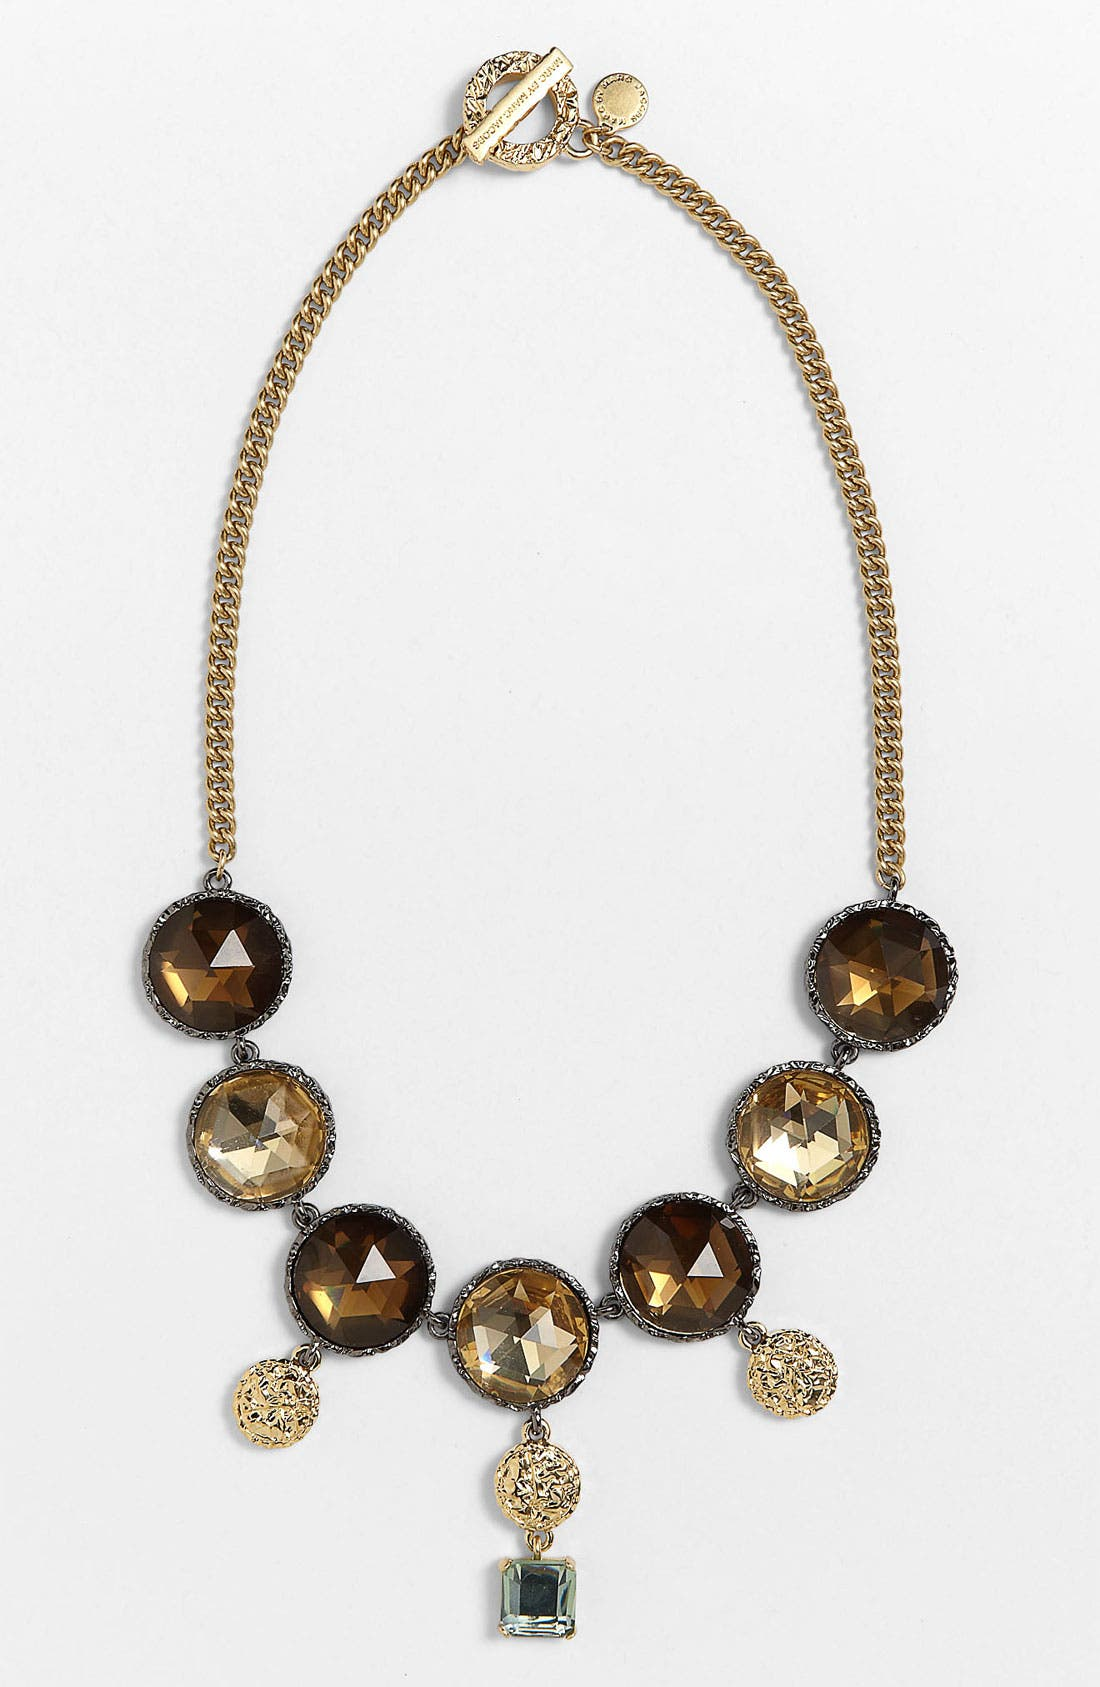 Alternate Image 1 Selected - MARC BY MARC JACOBS 'Paste & Prints' Bib Necklace